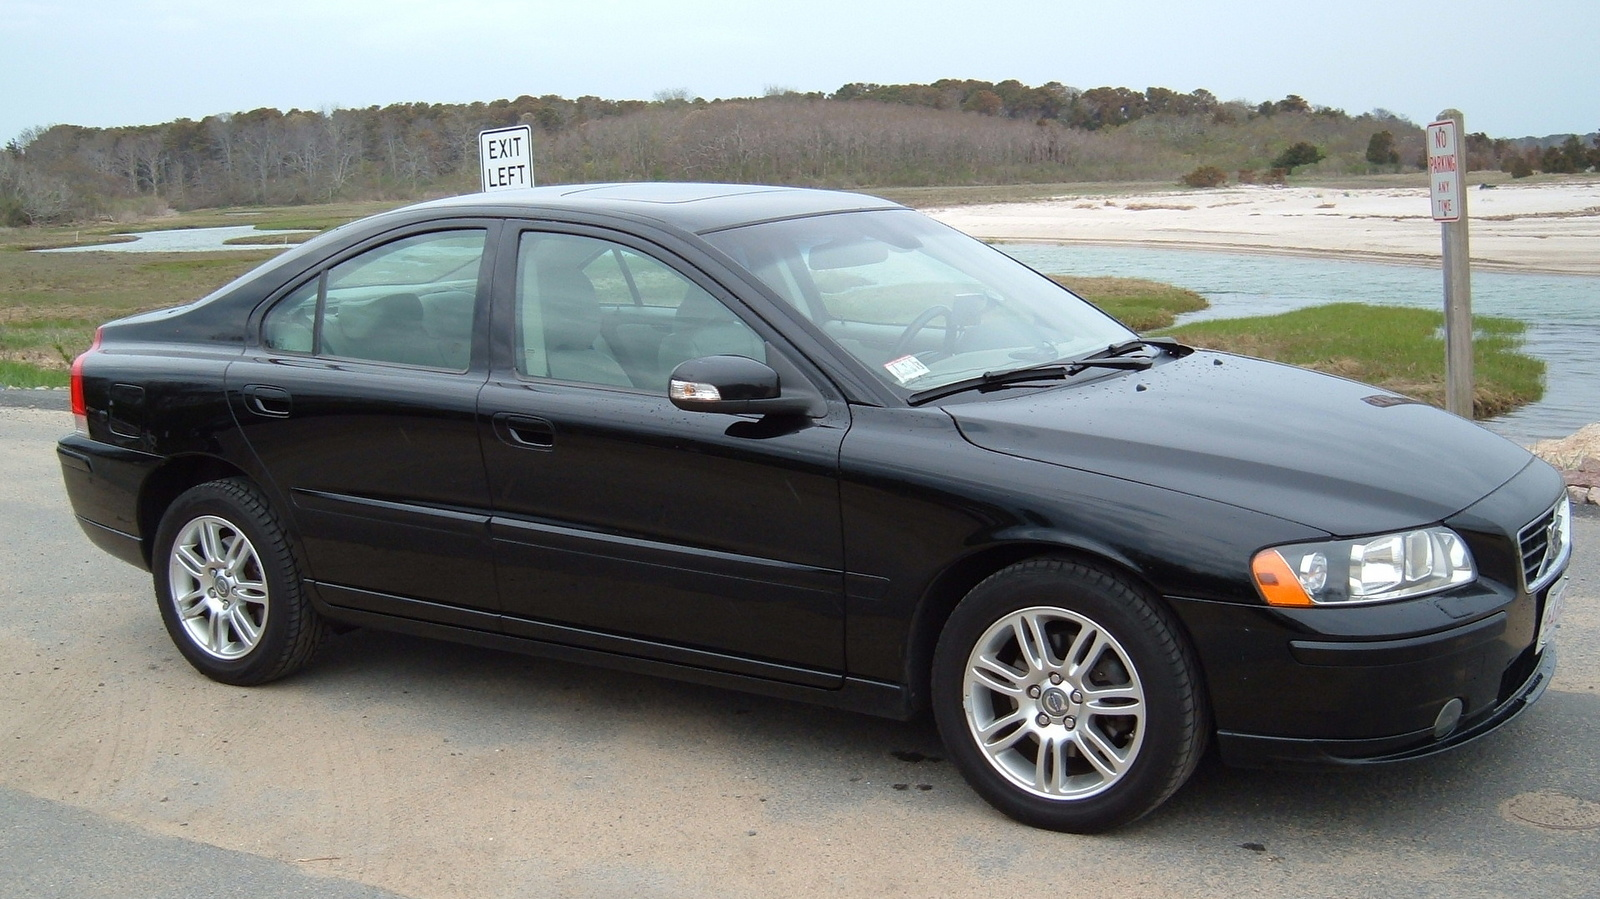 2005 Volvo S60 awd – pictures, information and specs - Auto-Database.com